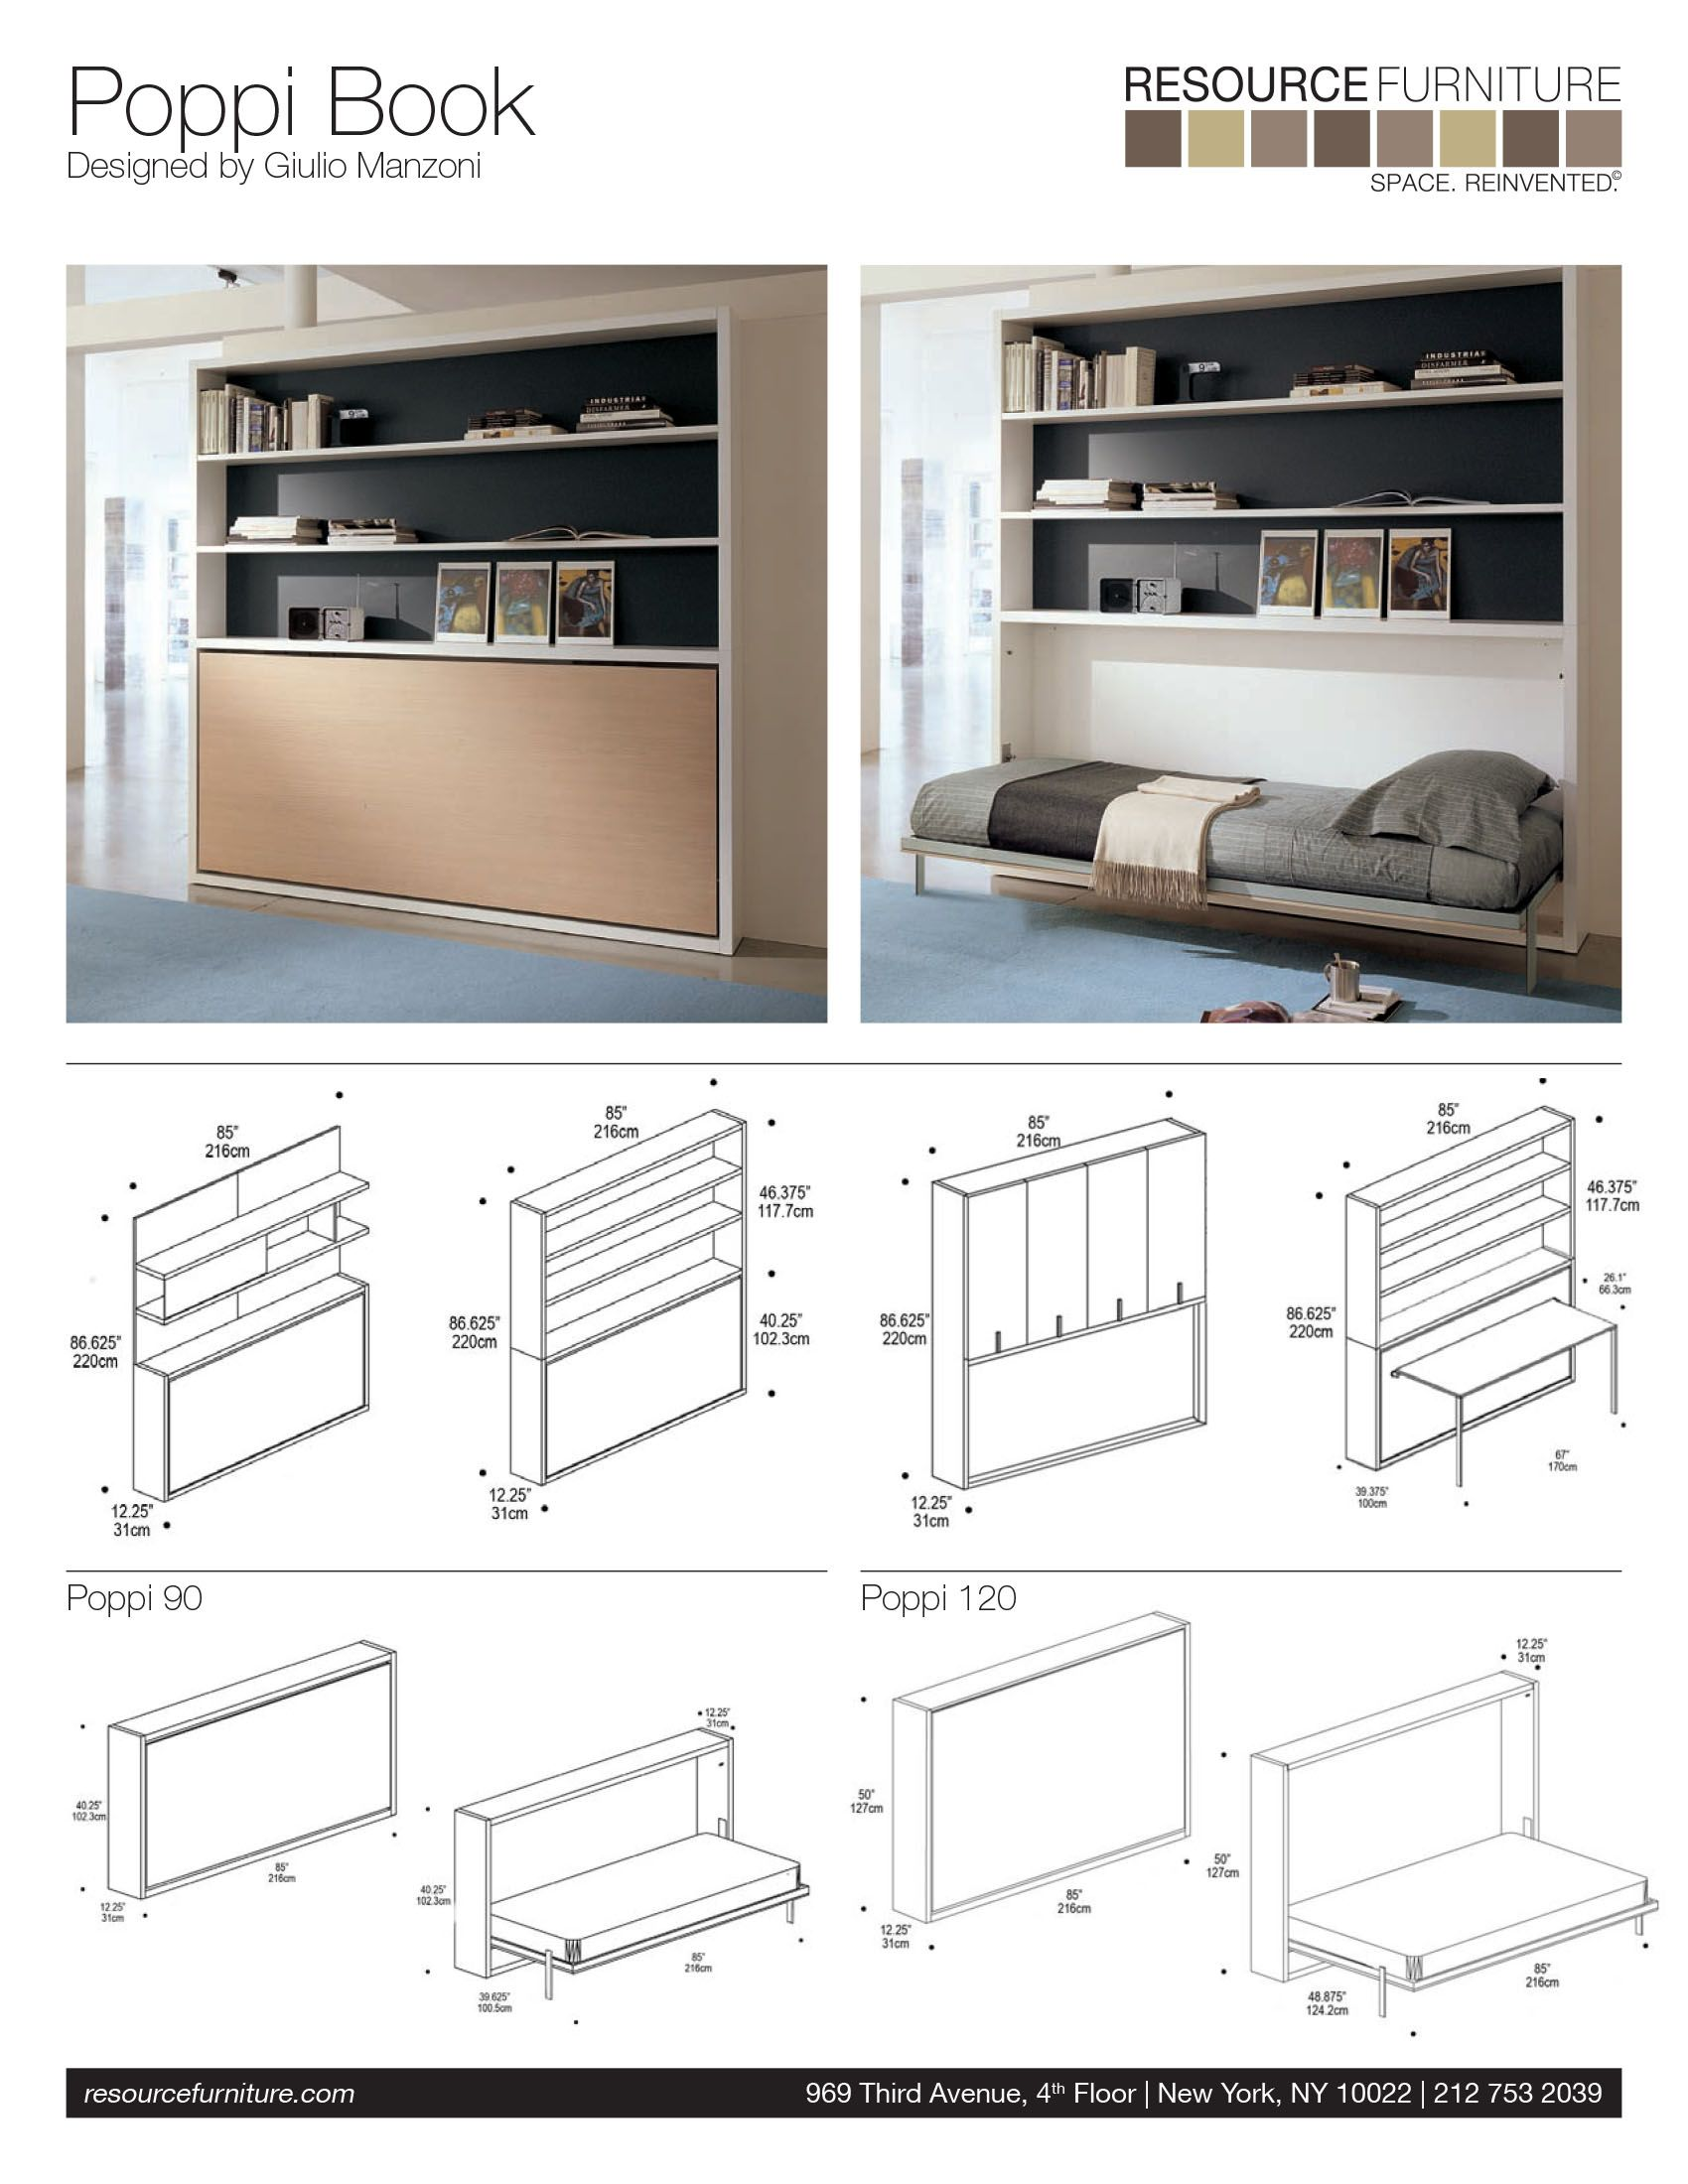 Poppi Book | Resource Furniture | Wall Beds & Murphy Beds ... - photo#33